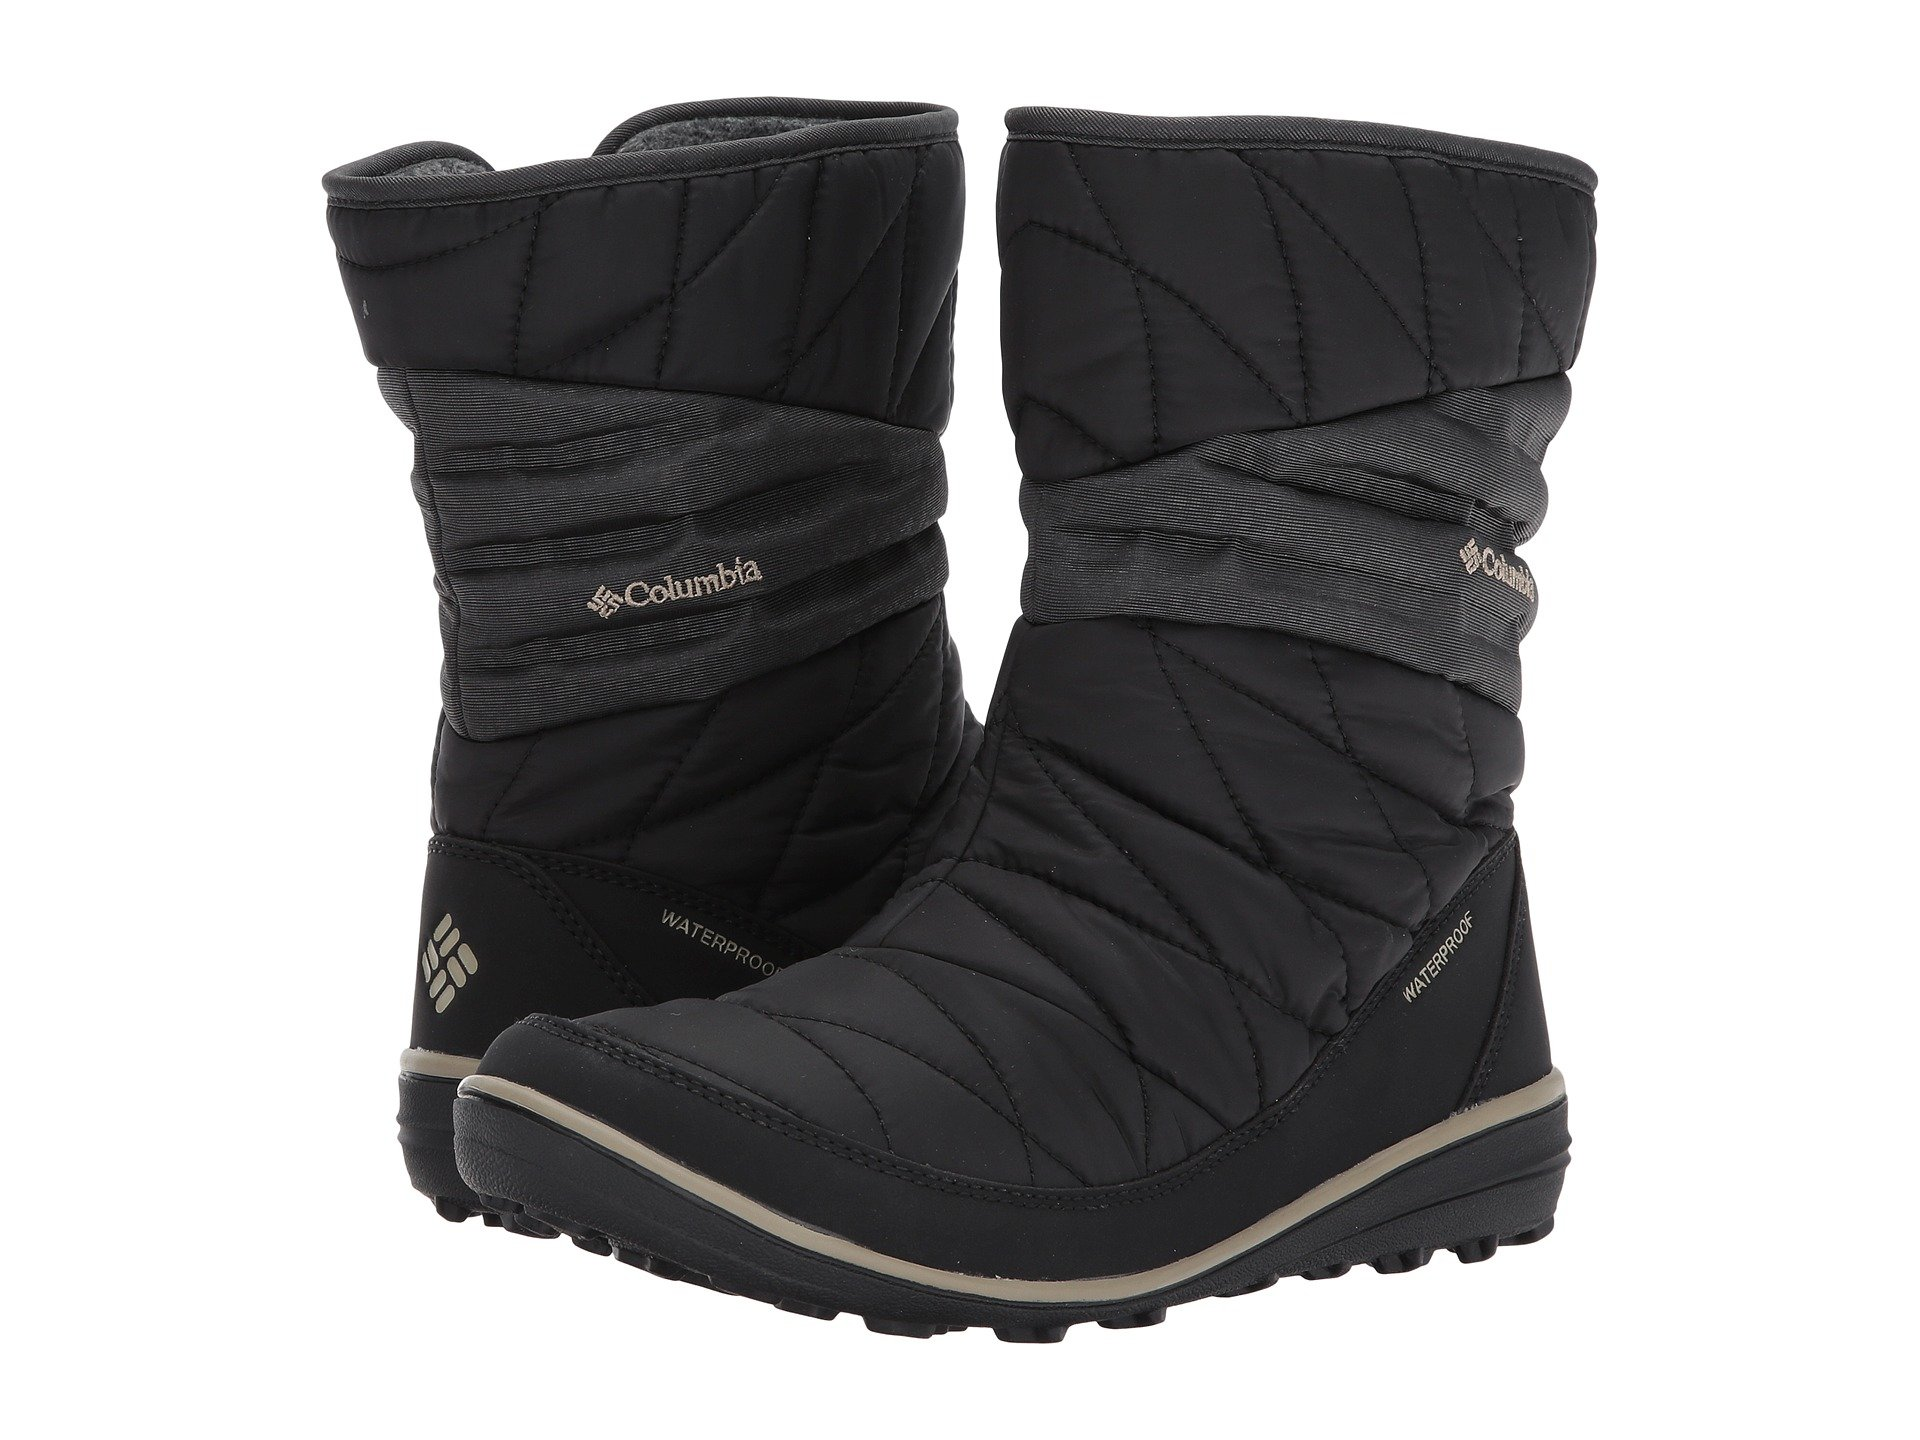 992fc8d3f35f3a Women's Columbia Boots + FREE SHIPPING | Shoes | Zappos.com